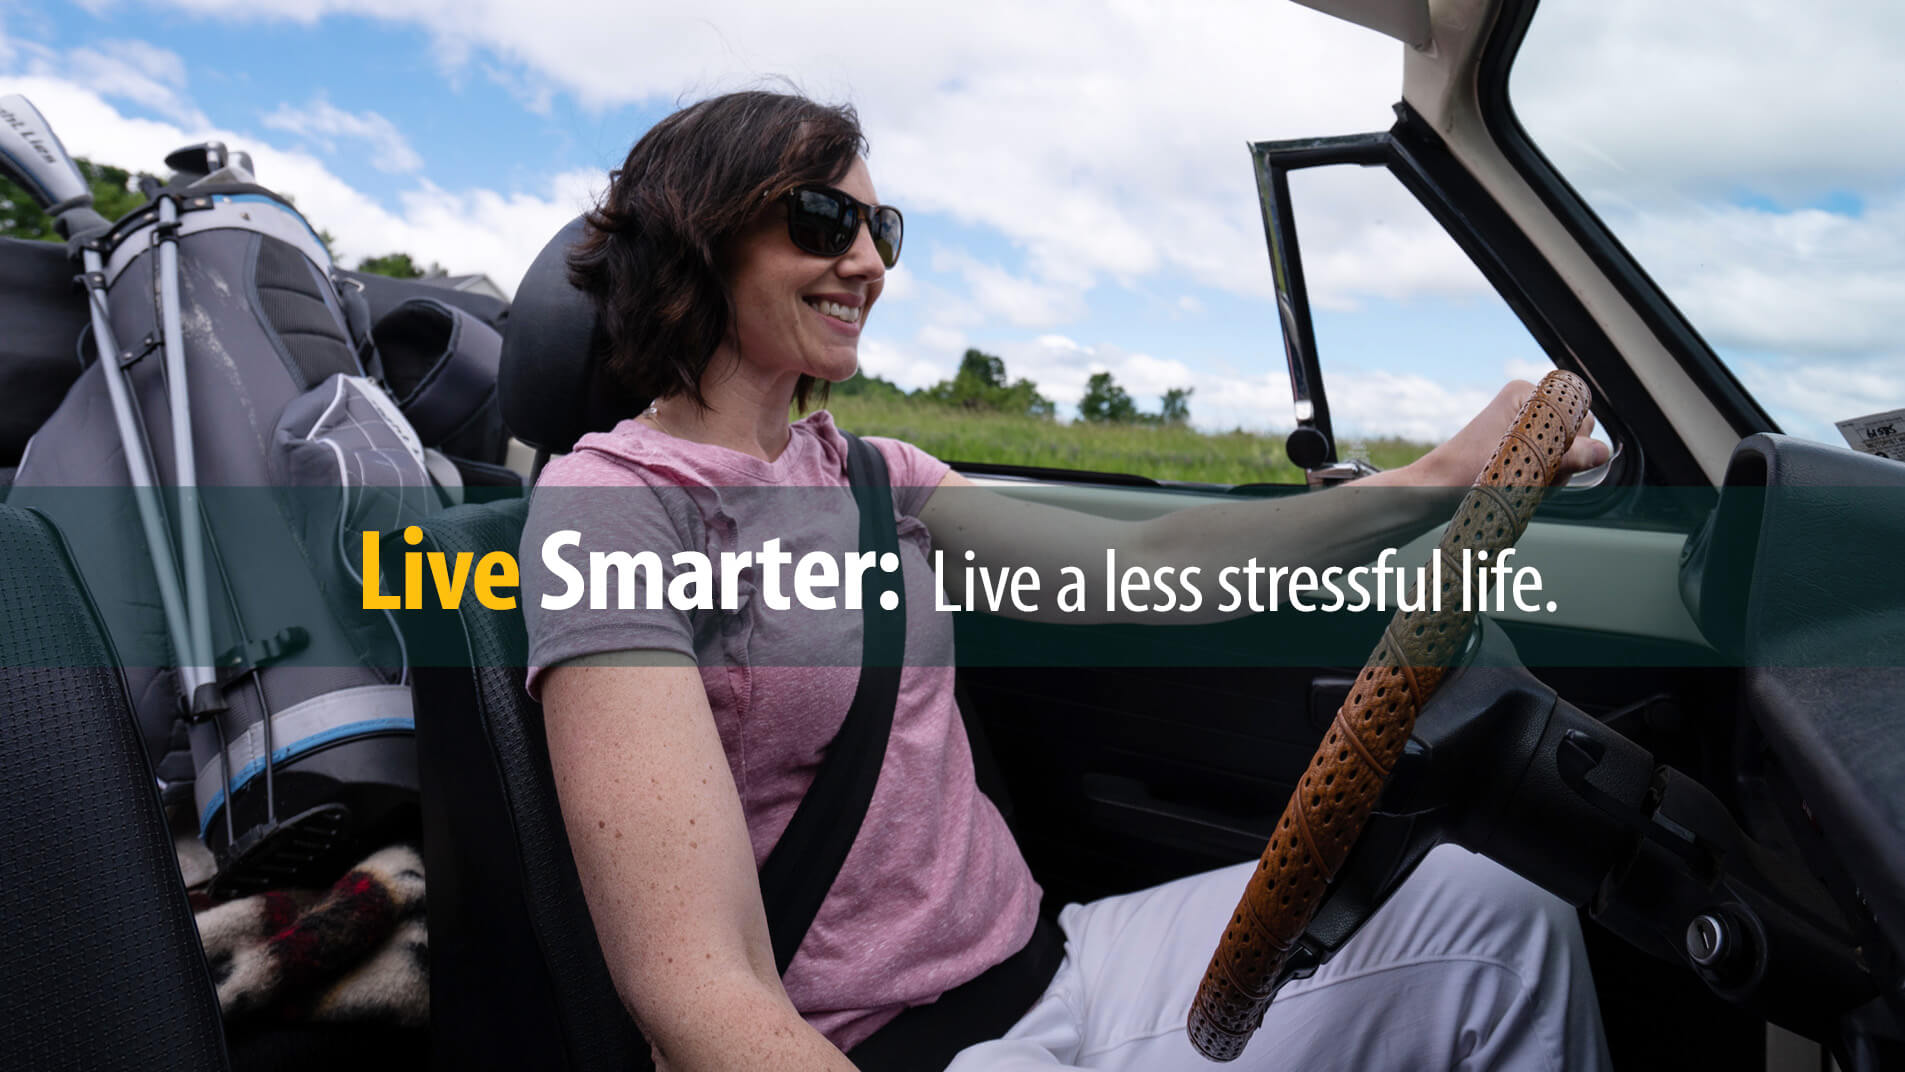 Smiling woman driving convertible is happy with a less stressful life managing her debt